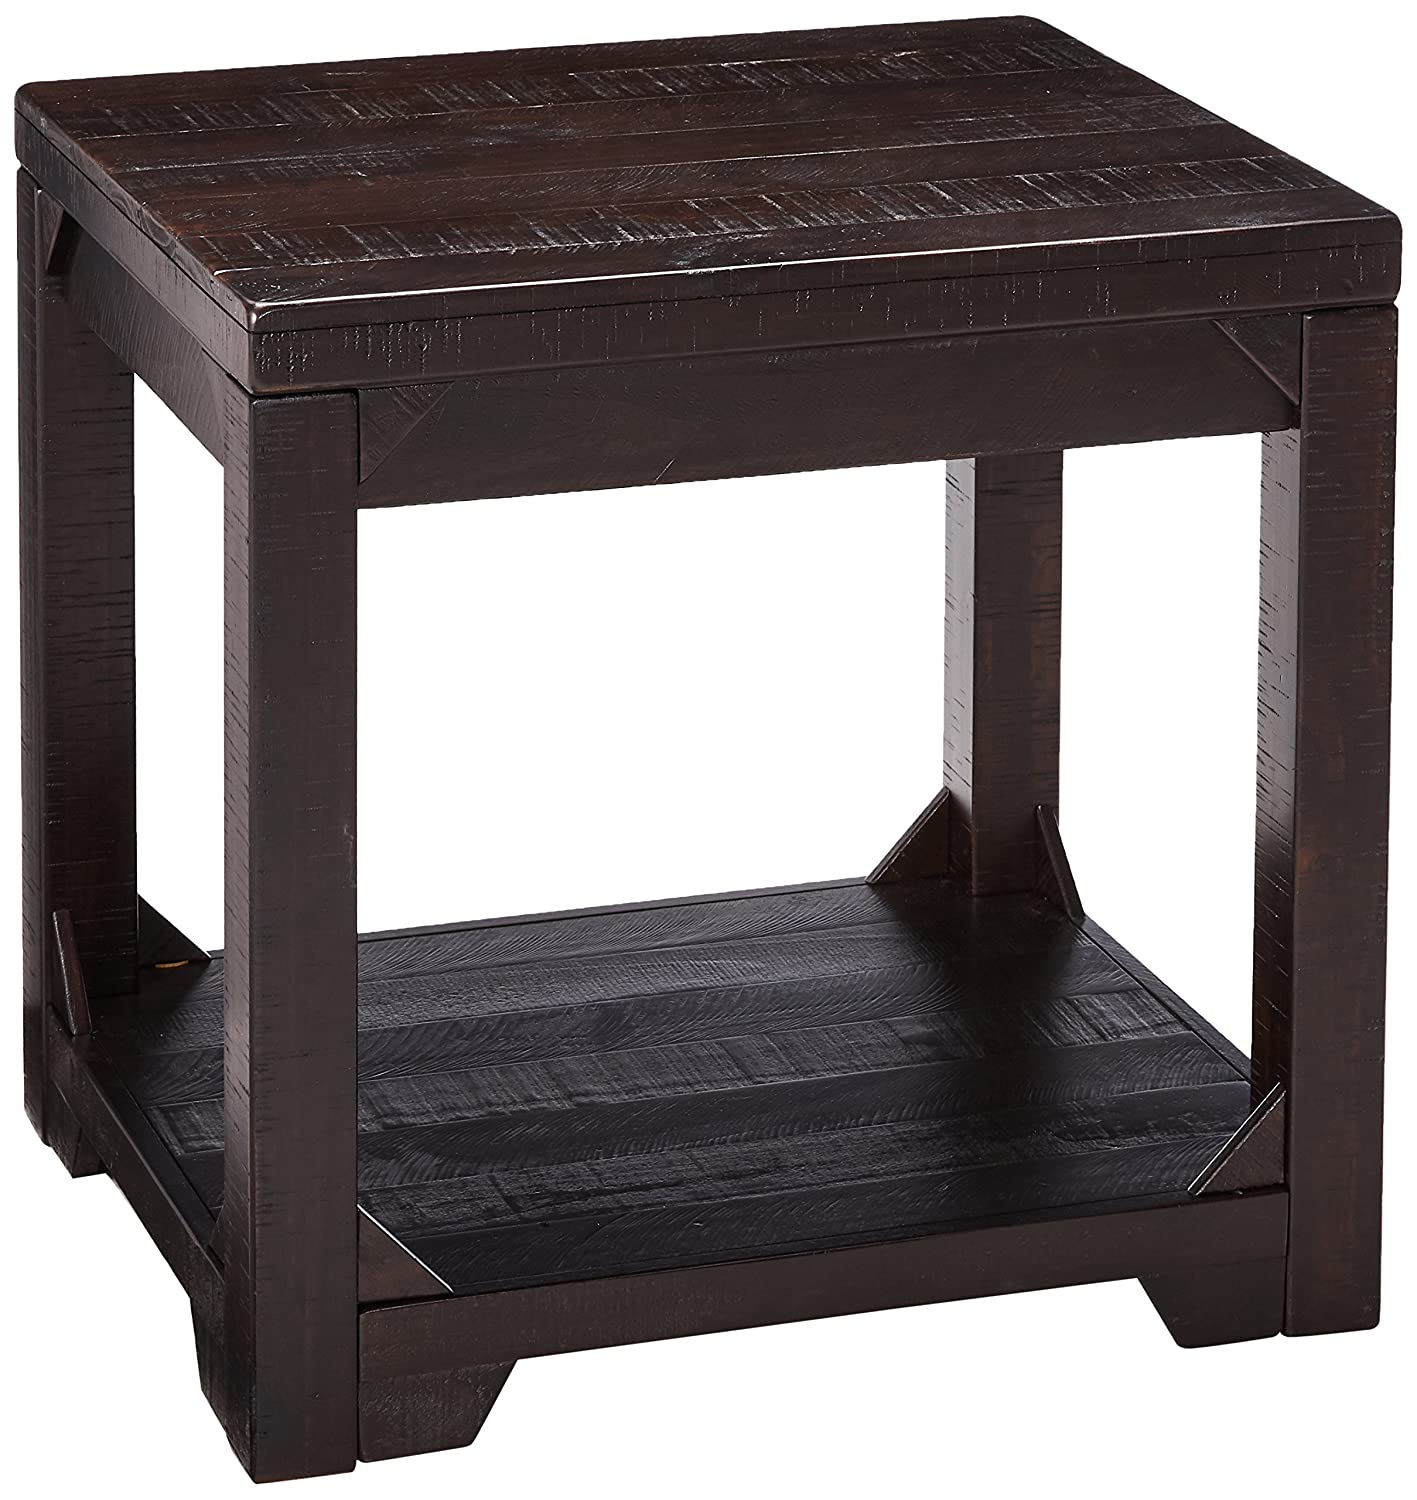 Signature Design by Ashley T745-3 Rectangular End Table Rustic Brown